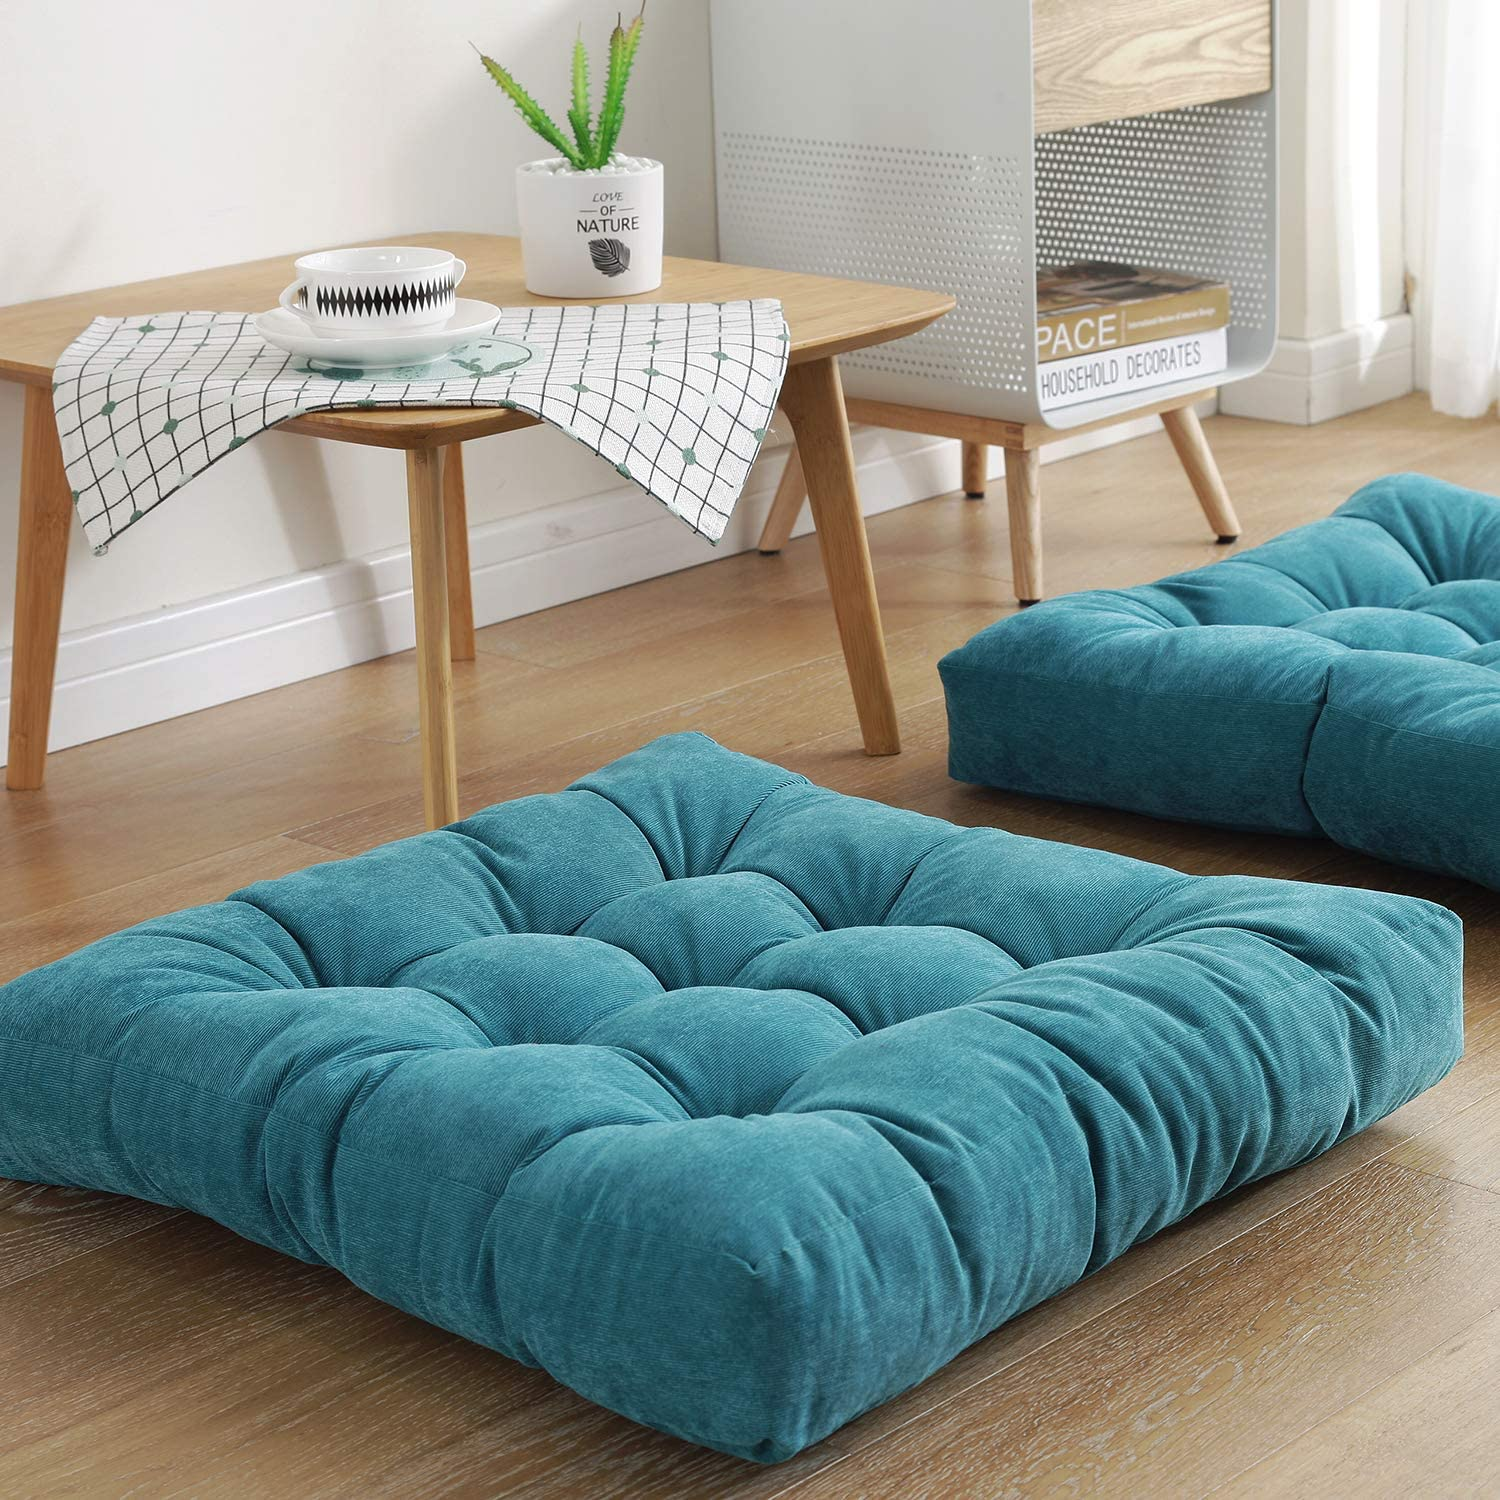 Square Floor Seat Pillows Cushions 22 x 22 Turquoise Soft Thicken Yoga Meditation Cushion Pouf Tufted Corduroy Tatami Floor Pillow Reading Cushion Chair Pad Casual Seating for Adults /& Kids